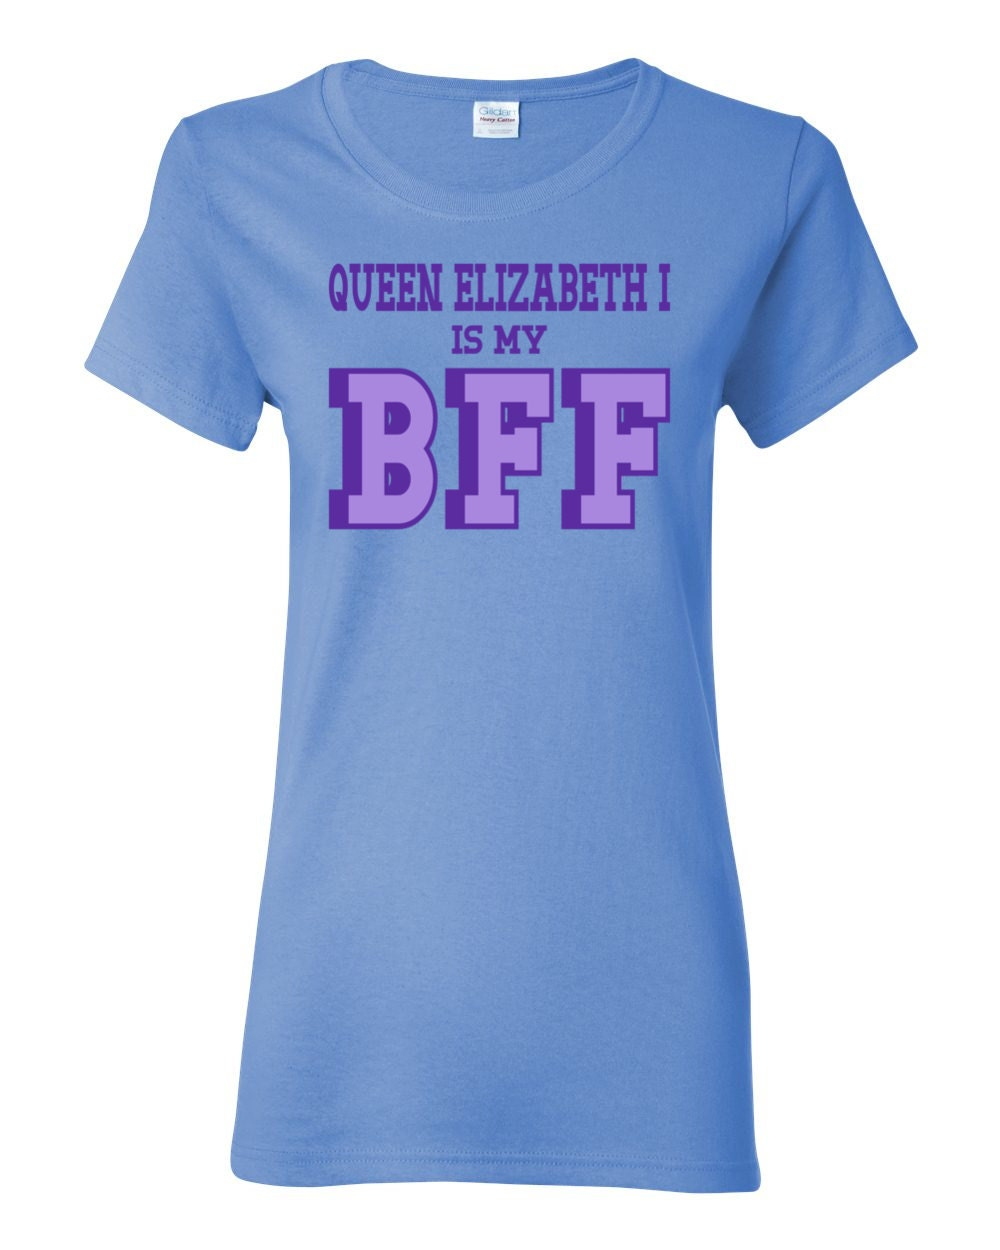 Great Women of History - Queen Elizabeth I is my BFF Womens History T-shirt